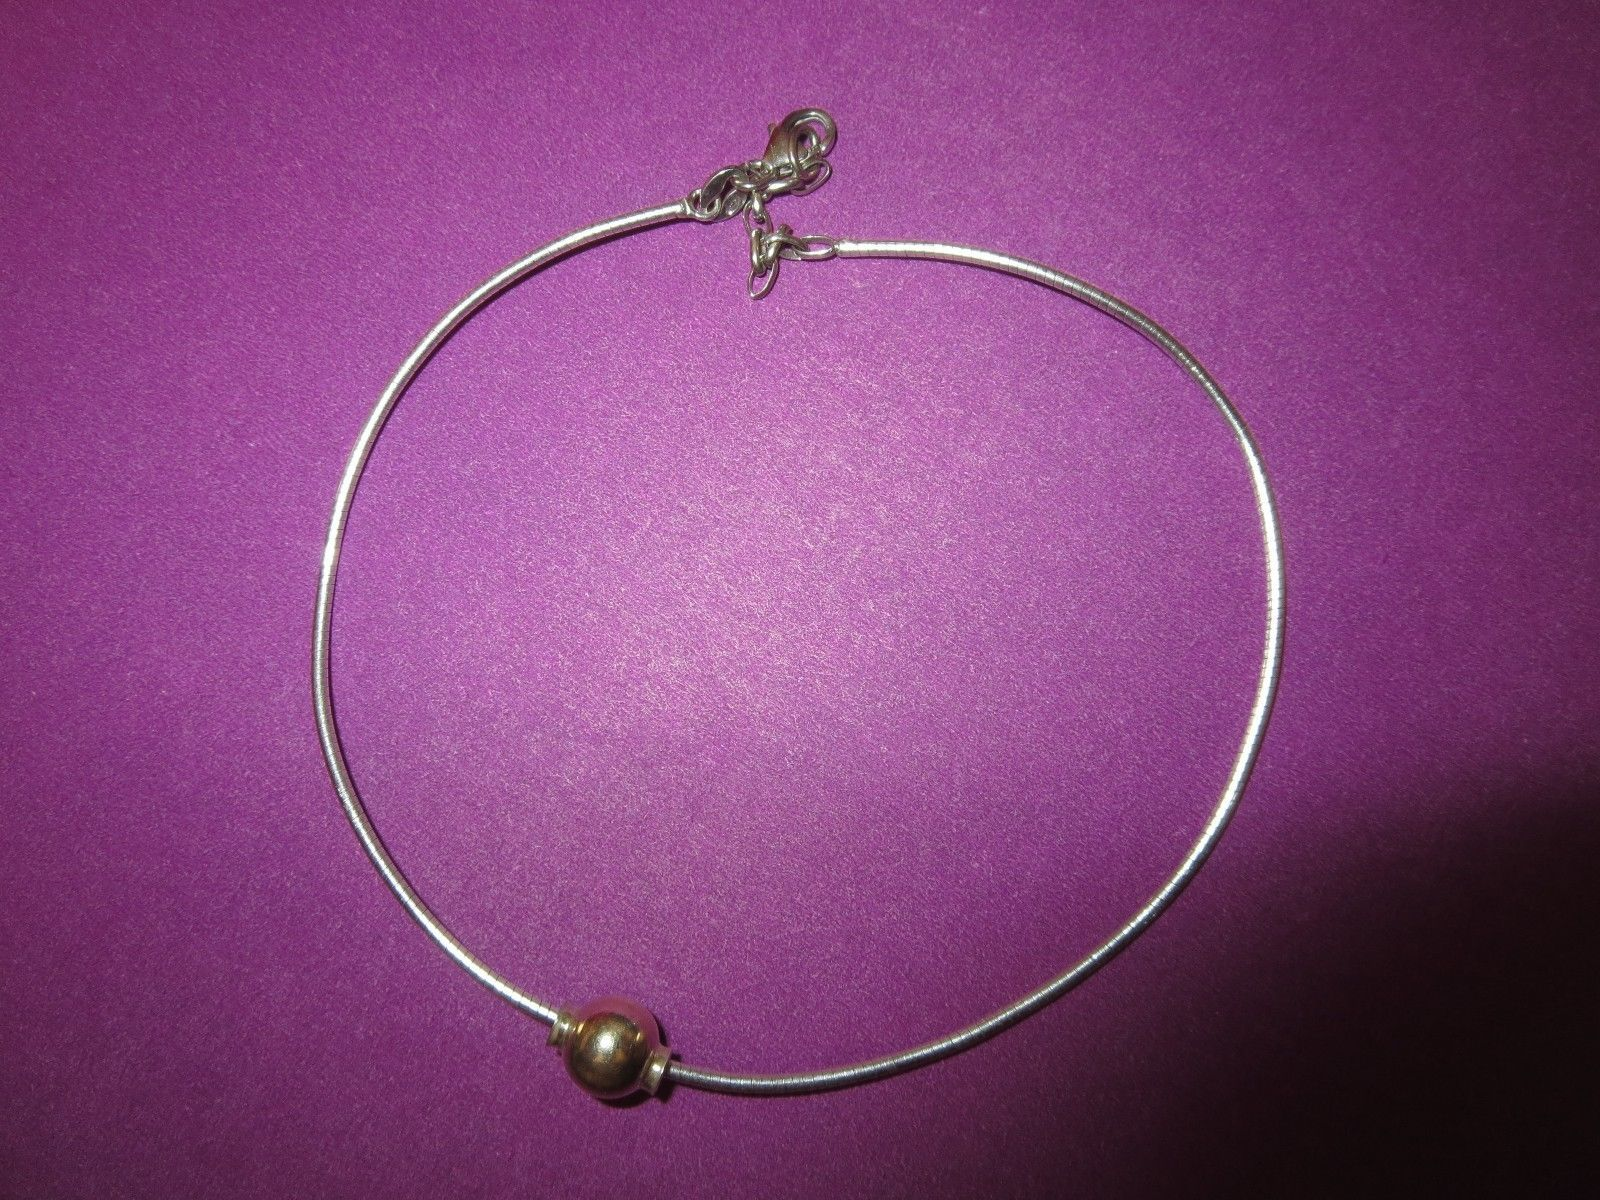 Cape cod sterling silver and k gold ankle snake chain bracelet